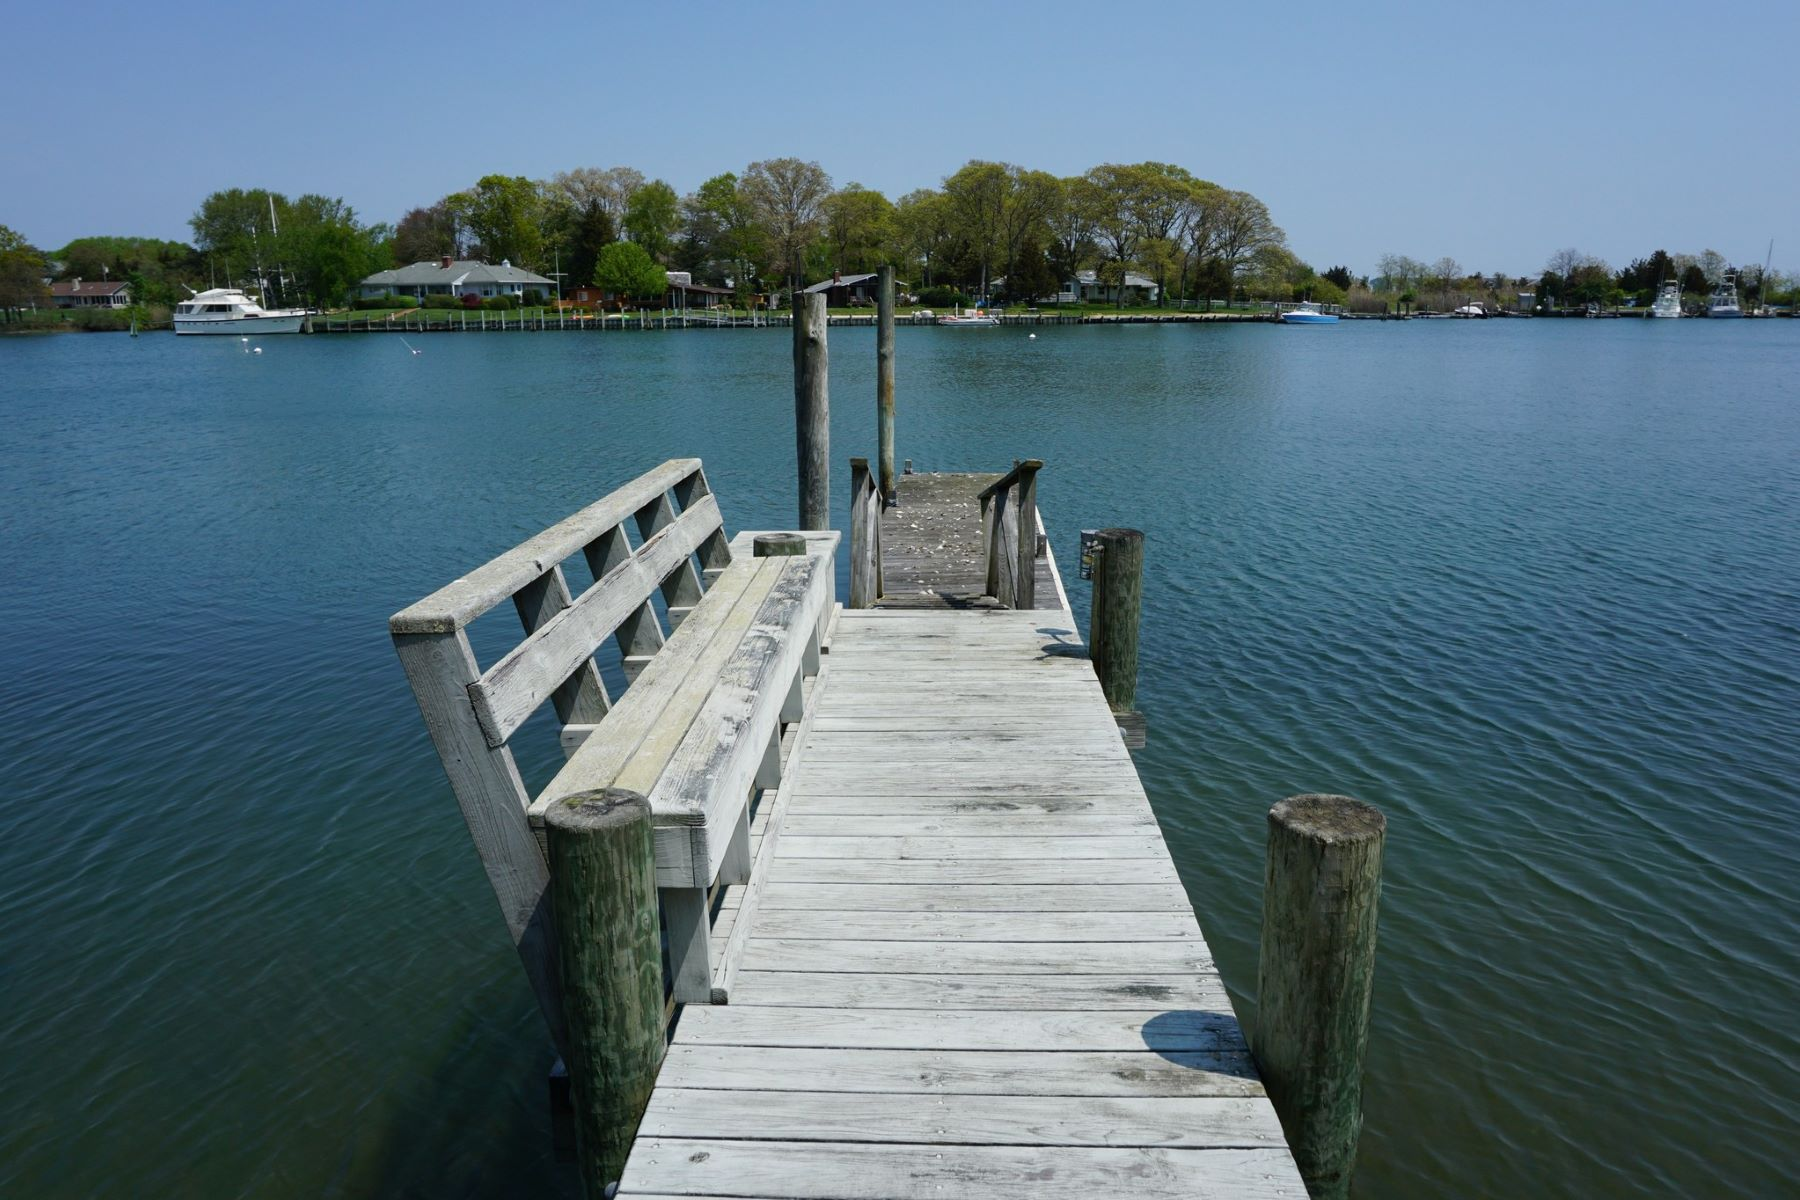 Single Family Home for Sale at 1240 & 1130 Inlet Ln , Greenport, NY 11944 1240 & 1130 Inlet Ln Greenport, New York 11944 United States